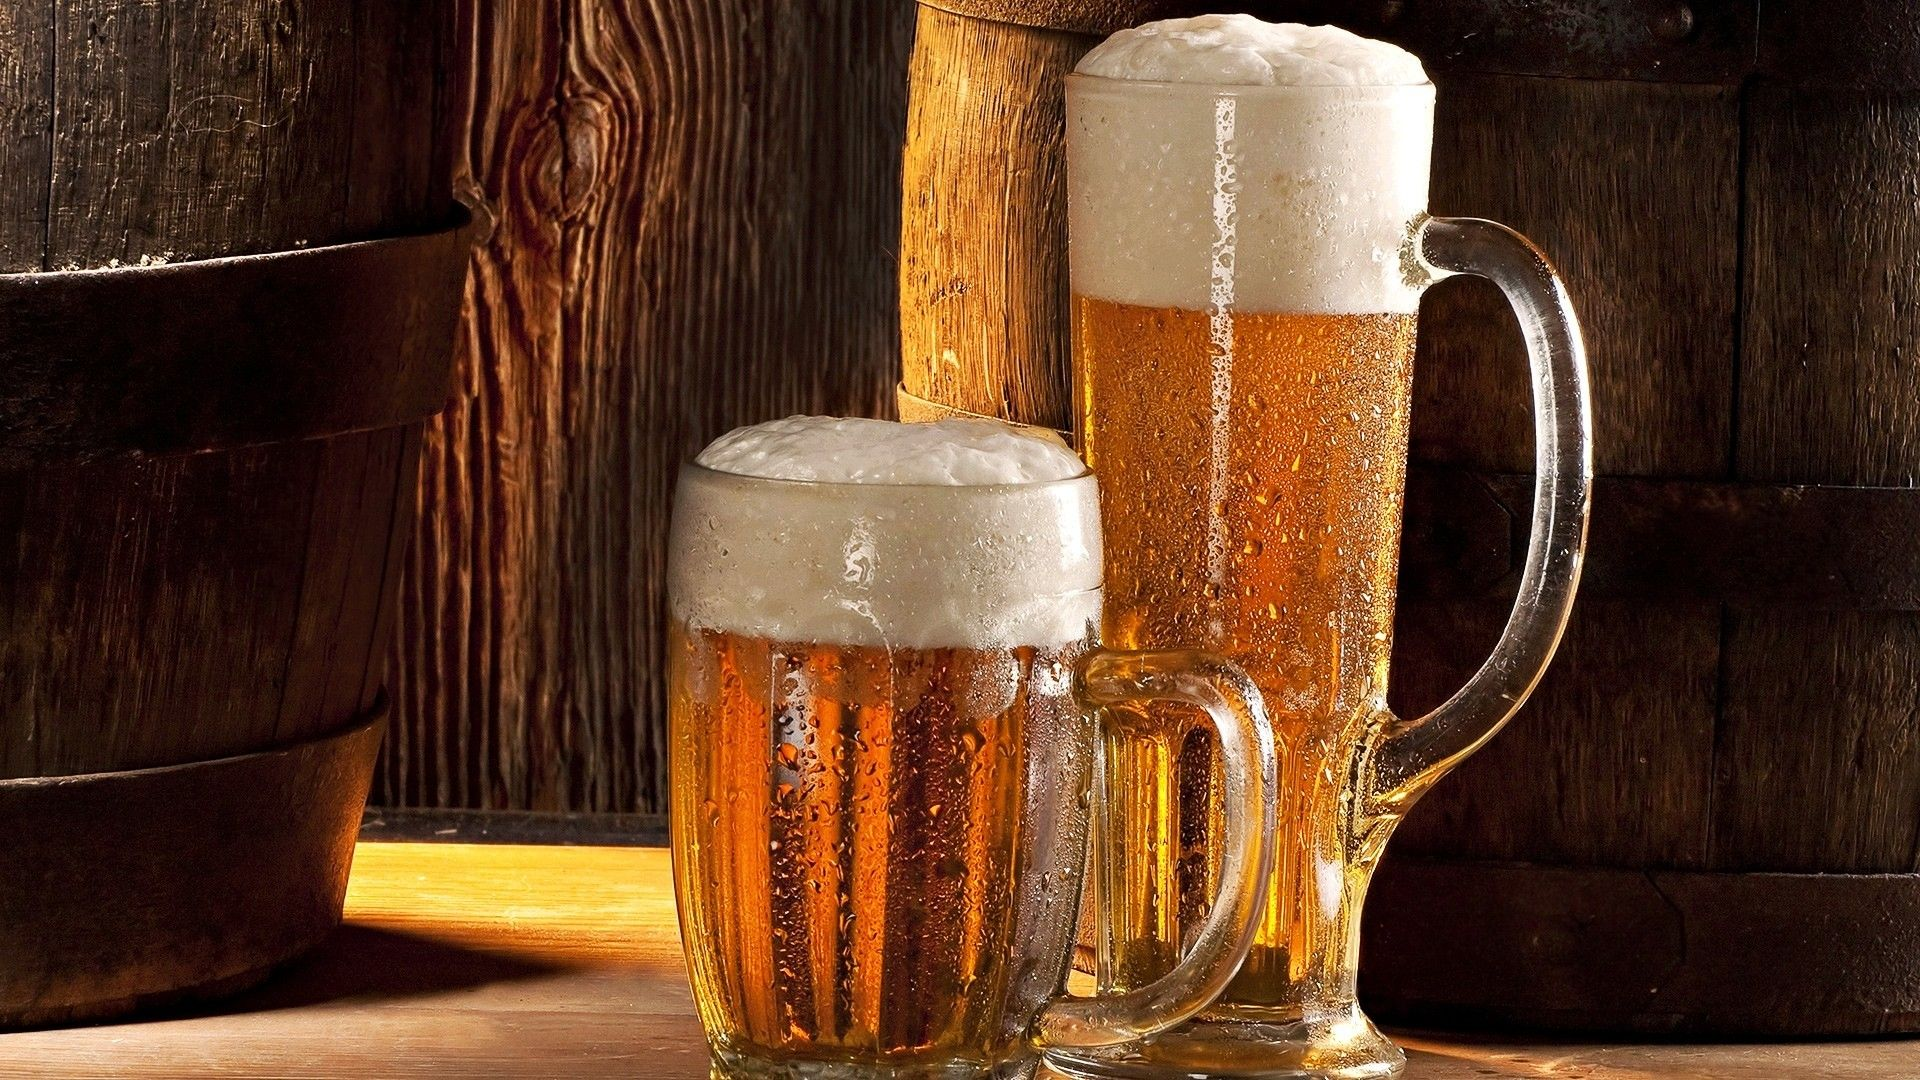 Beer Glasses Two Hd Wallpaper Is An Hd Wallpaper Posted In